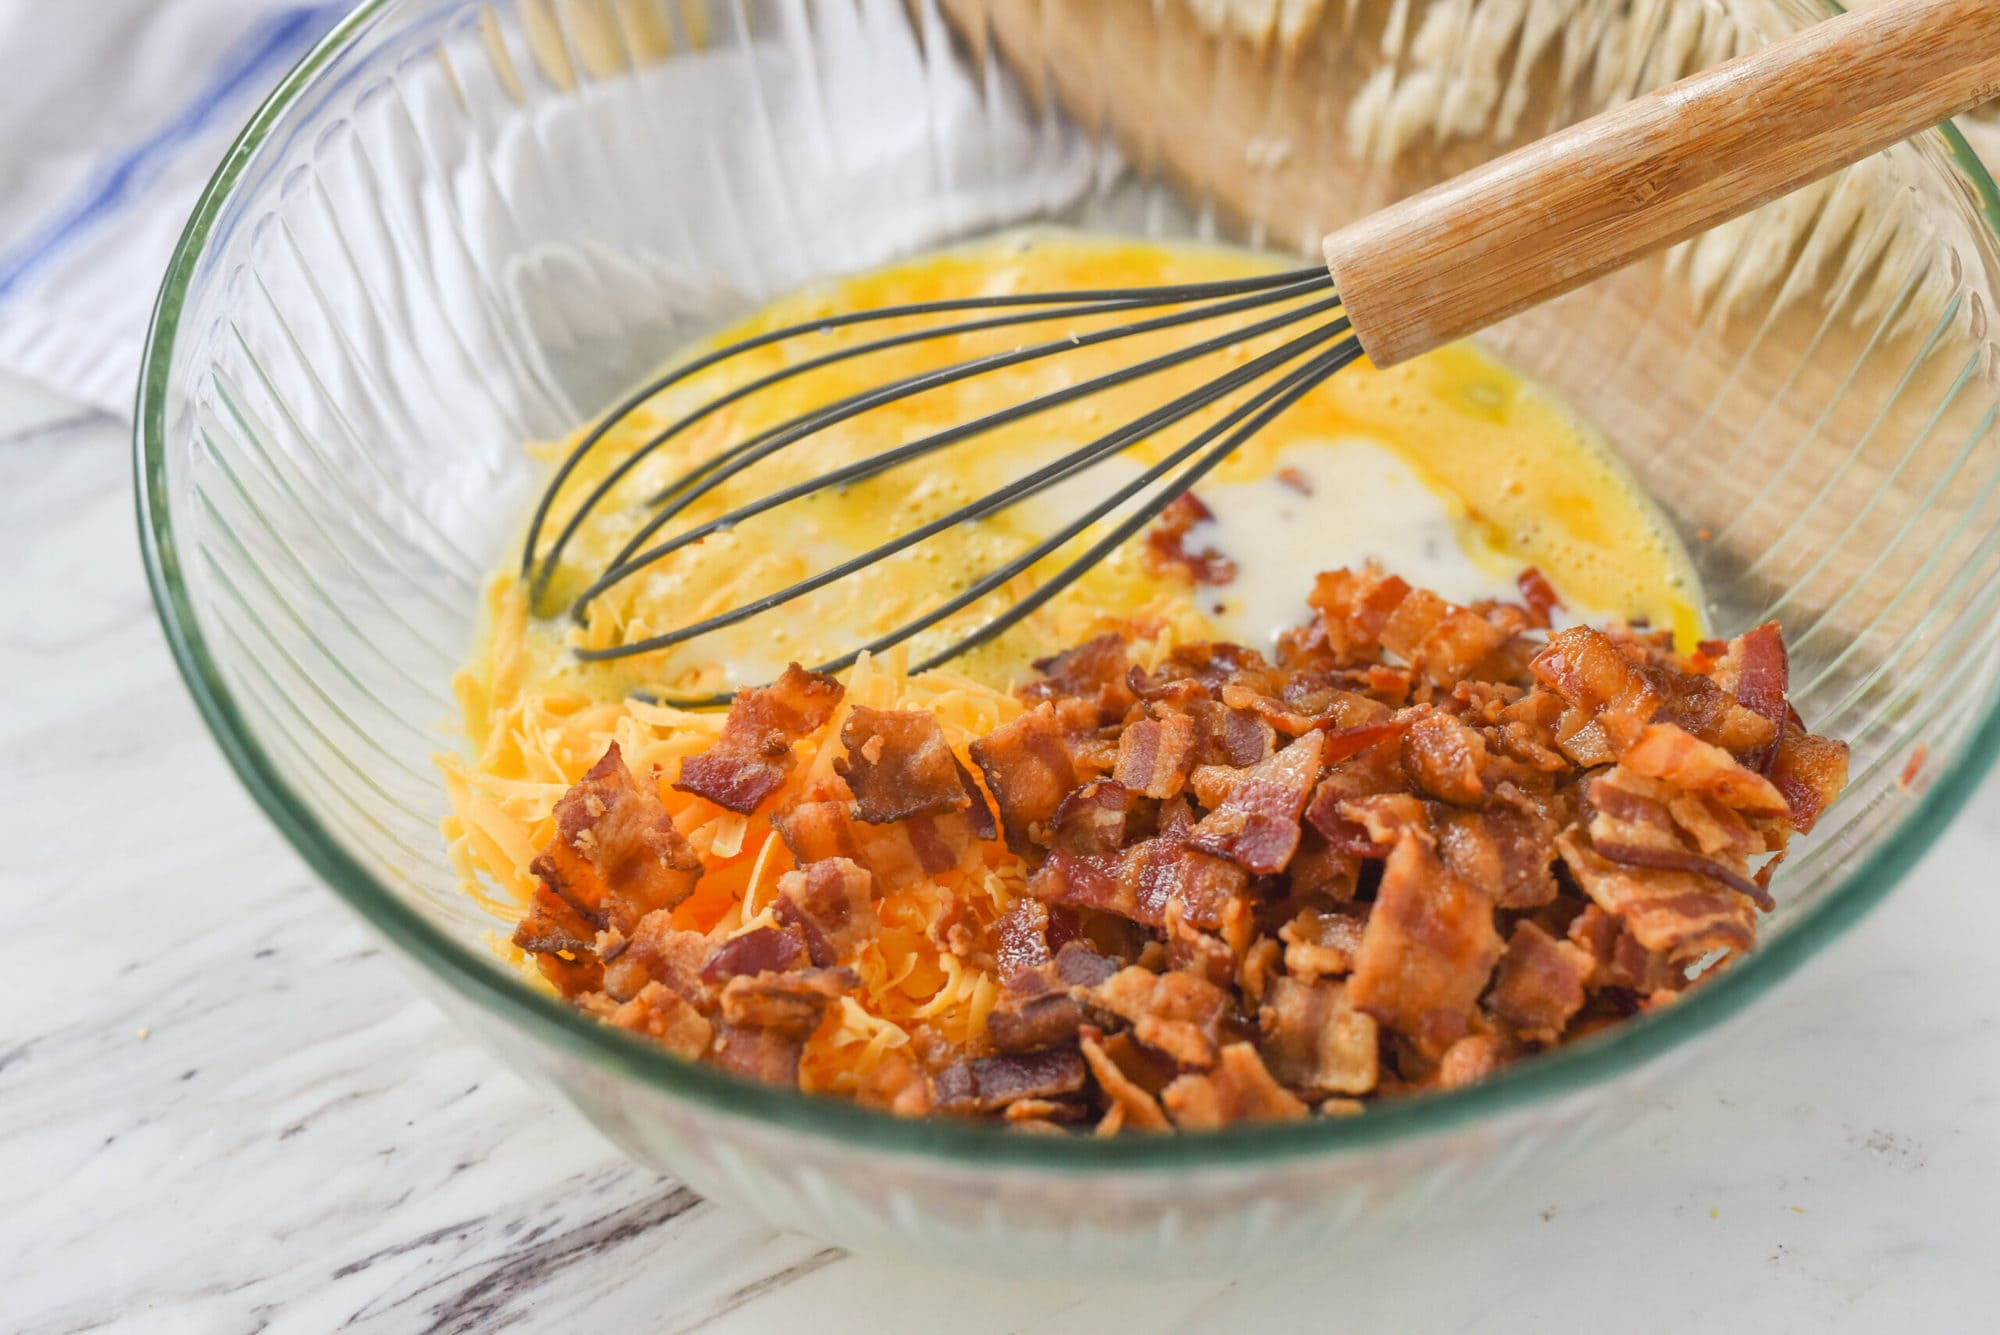 bacon casserole mixture in a bowl